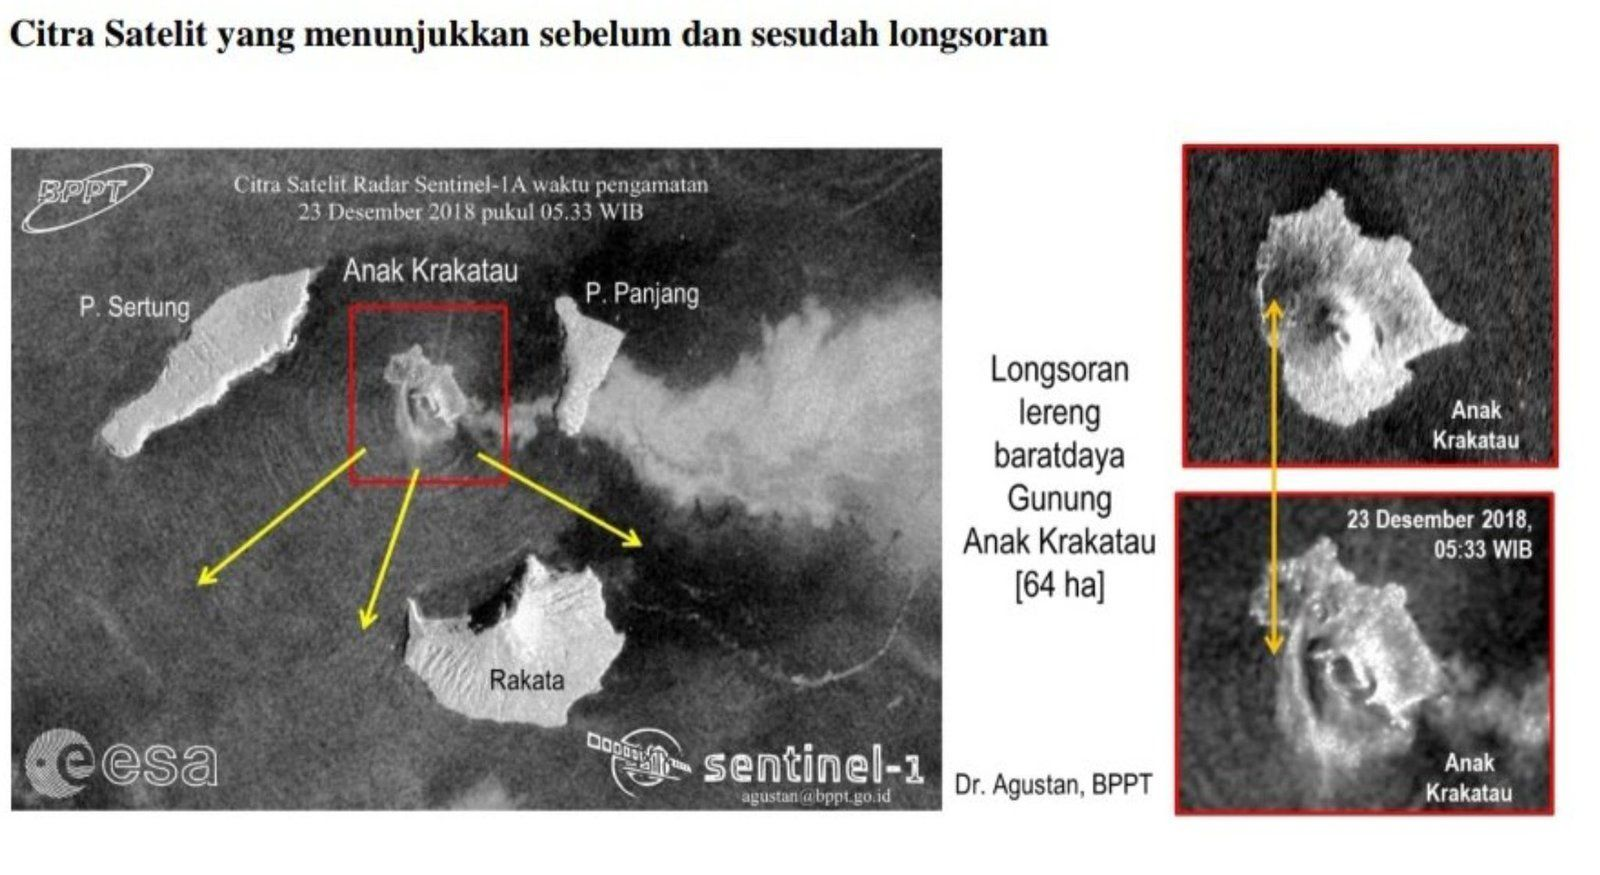 Anak Krakatau -  analysis of image Sentinel-1 Citra radar at 23.12.2018